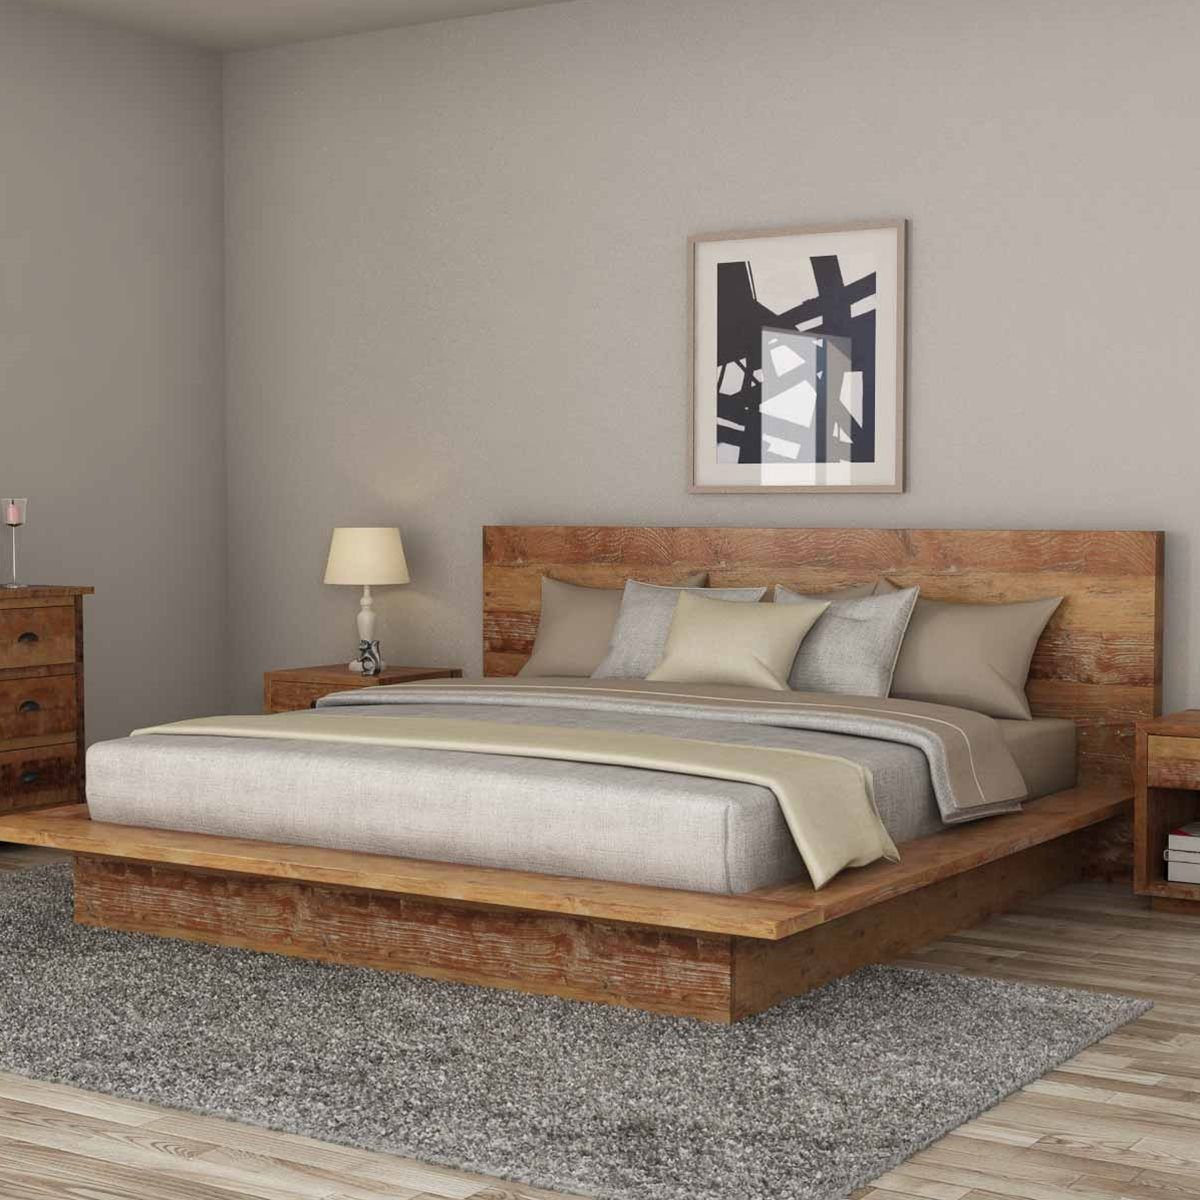 Britain Low Height Teak Wood Modern Platform Bed Frame With Headboard Rustic Platform Bed Wood Bed Design Platform Bed Designs